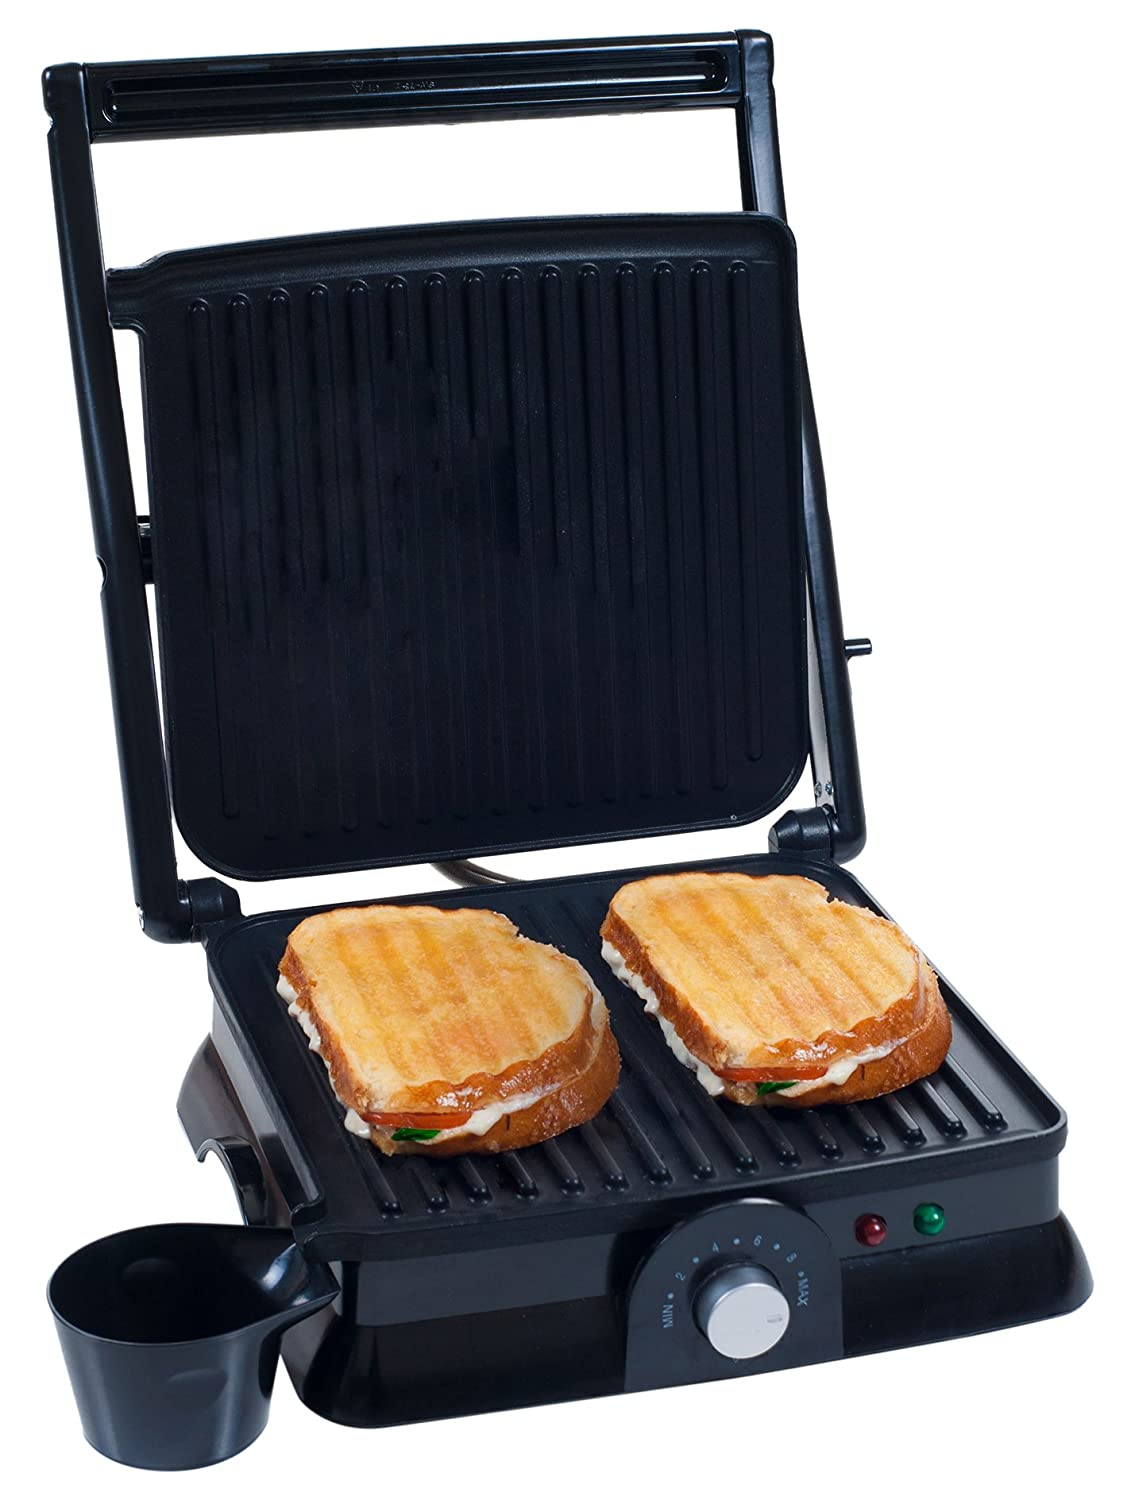 Chef Buddy 80-KIT1019 Panini Press Indoor Grill and Gourmet Sandwich Maker, Electric with Nonstick Plates by